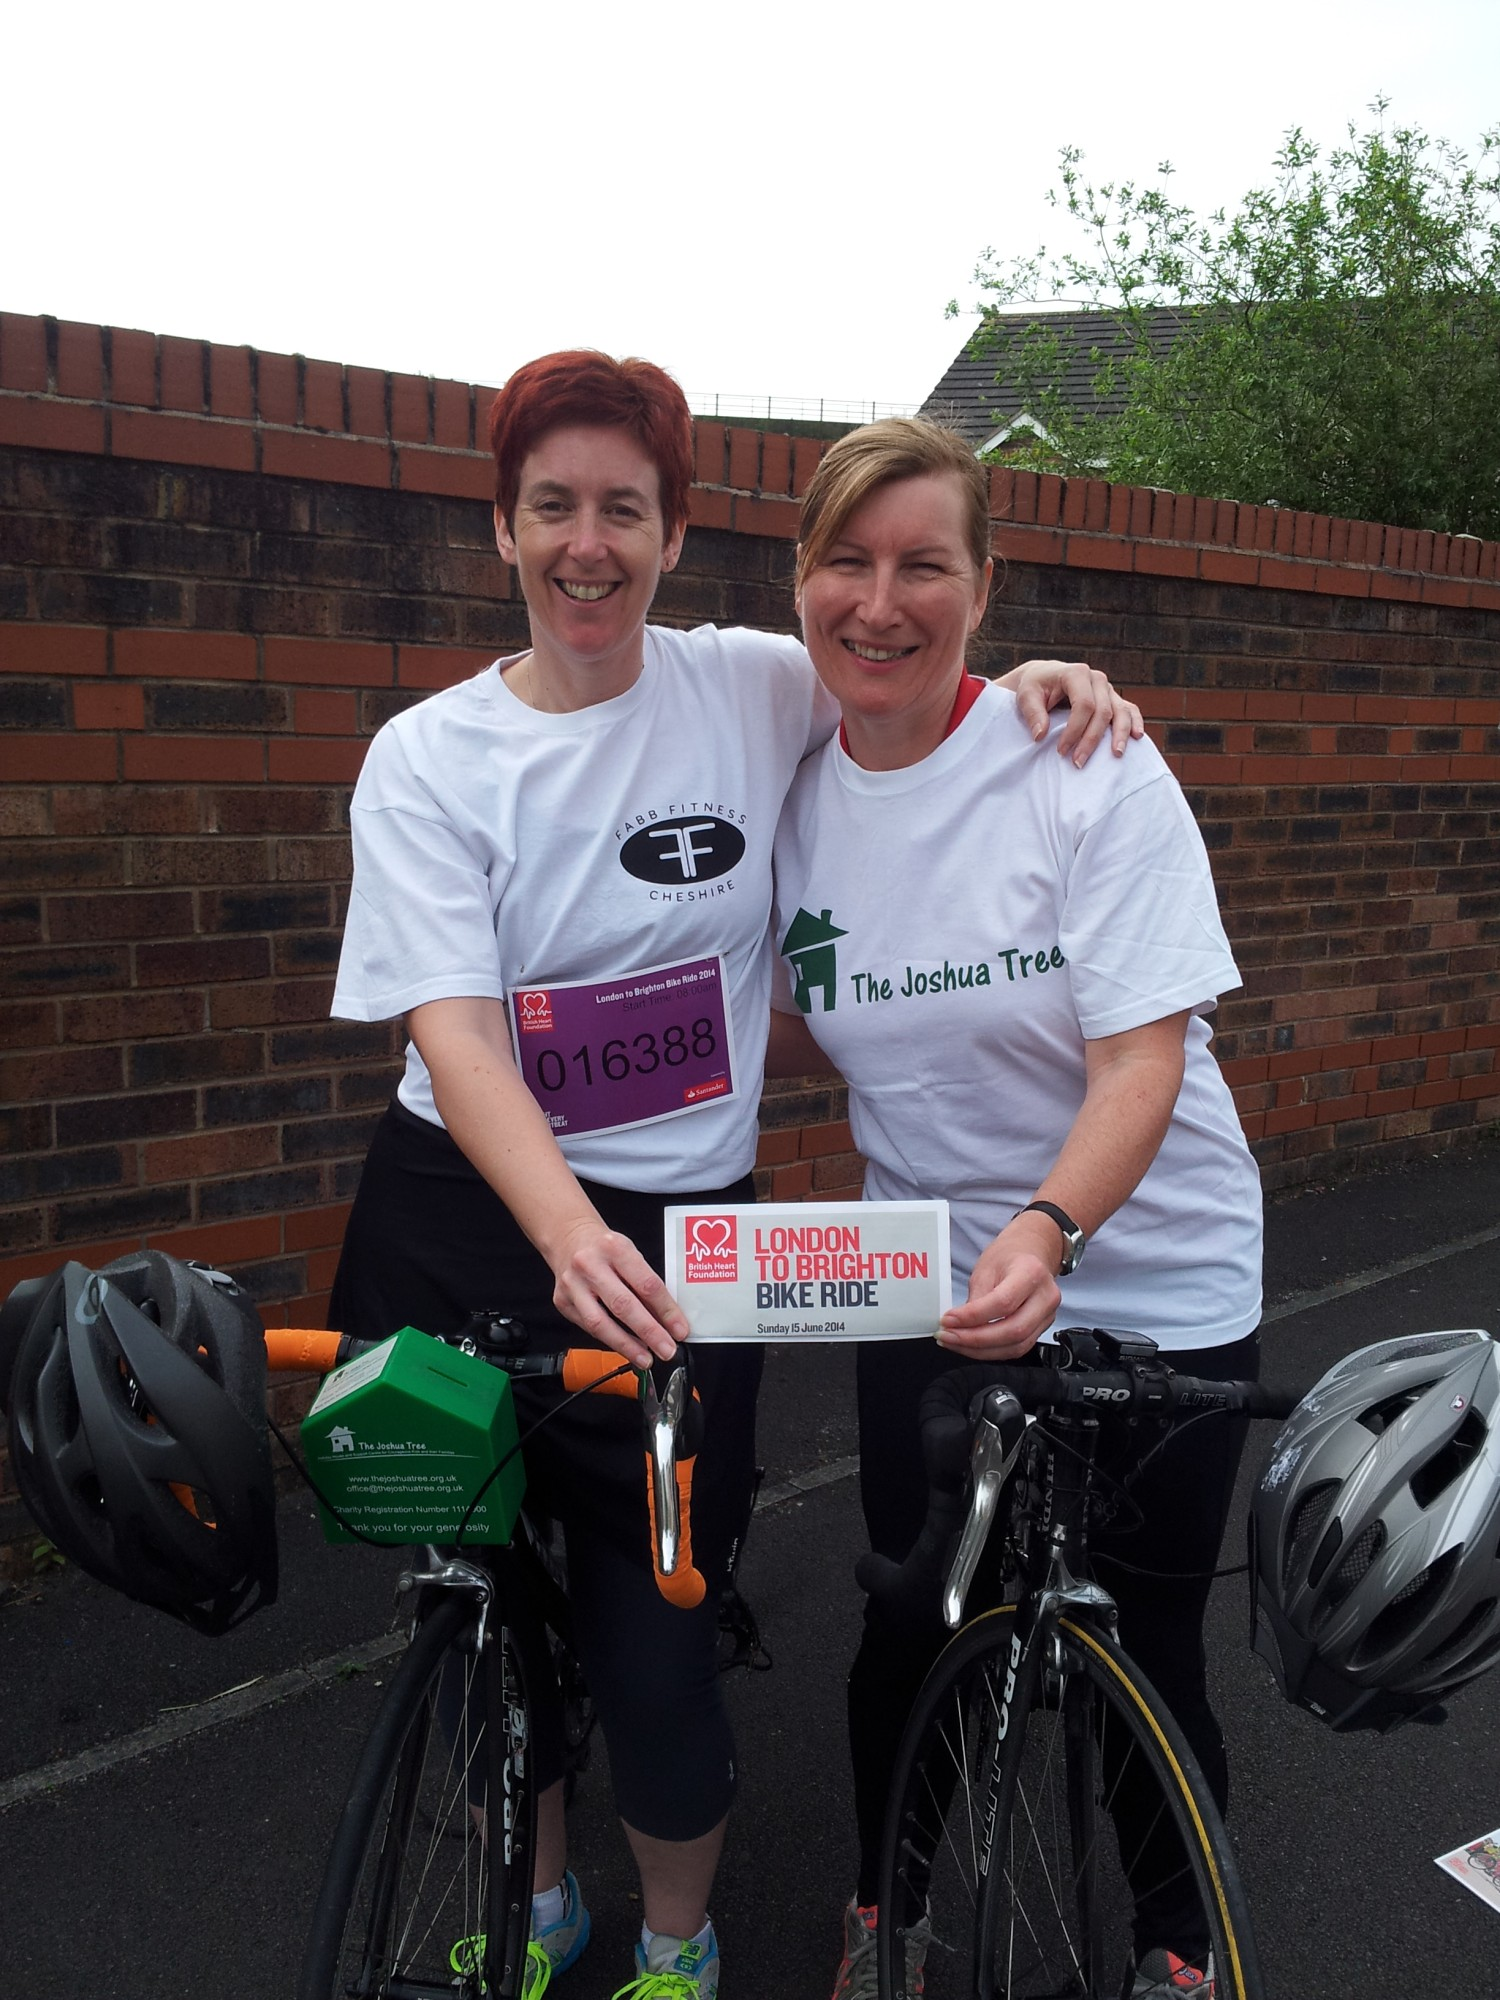 Theresa Bateman and Pam Ford are embarking on a charity bike ride at the start of National Bike Week.